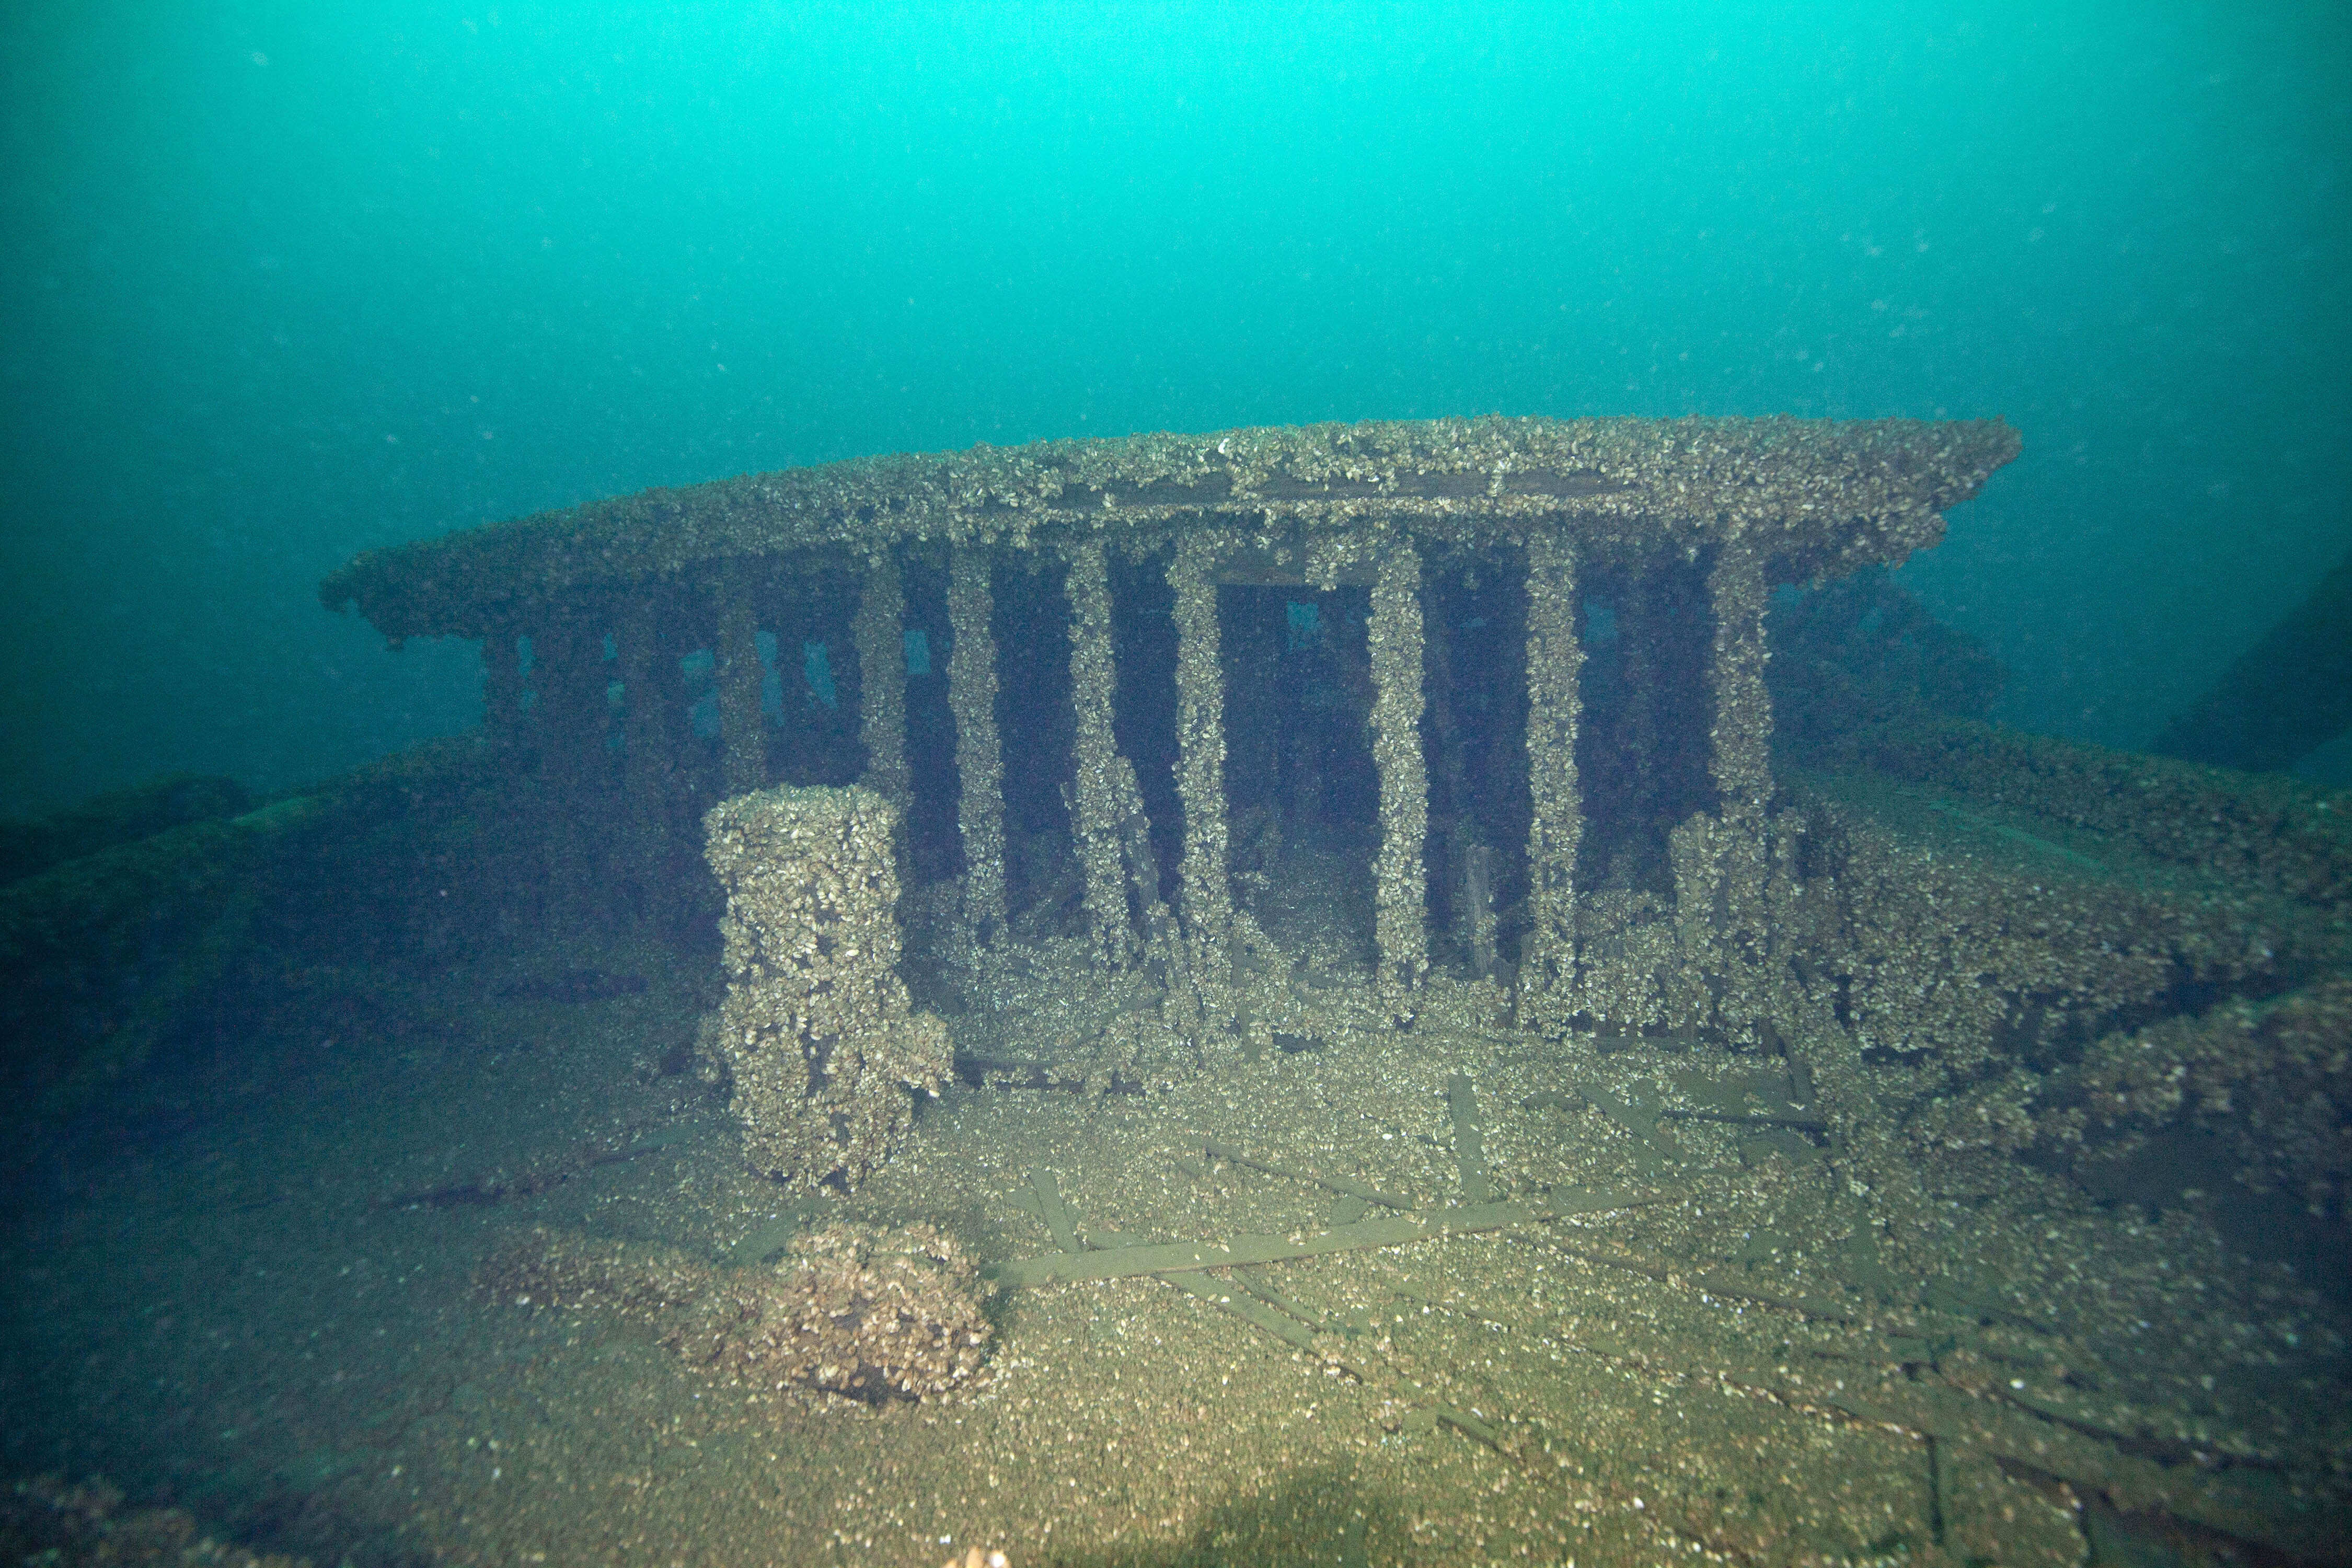 This Aug. 24, 2019, photo provided by John Janzen, shows part of the wreckage of the schooners Peshtigo and St. Andrews, lost in 1878 near Beaver Island in northern Lake Michigan. A group of maritime history enthusiasts led by Boyne City, Michigan diver and explorer, Bernie Hellstrom have announced the discovery of the schooners. The site was located in 2010 by Hellstrom during one of his many trips to explore the Beaver Island archipelago. (John Janzen via AP)